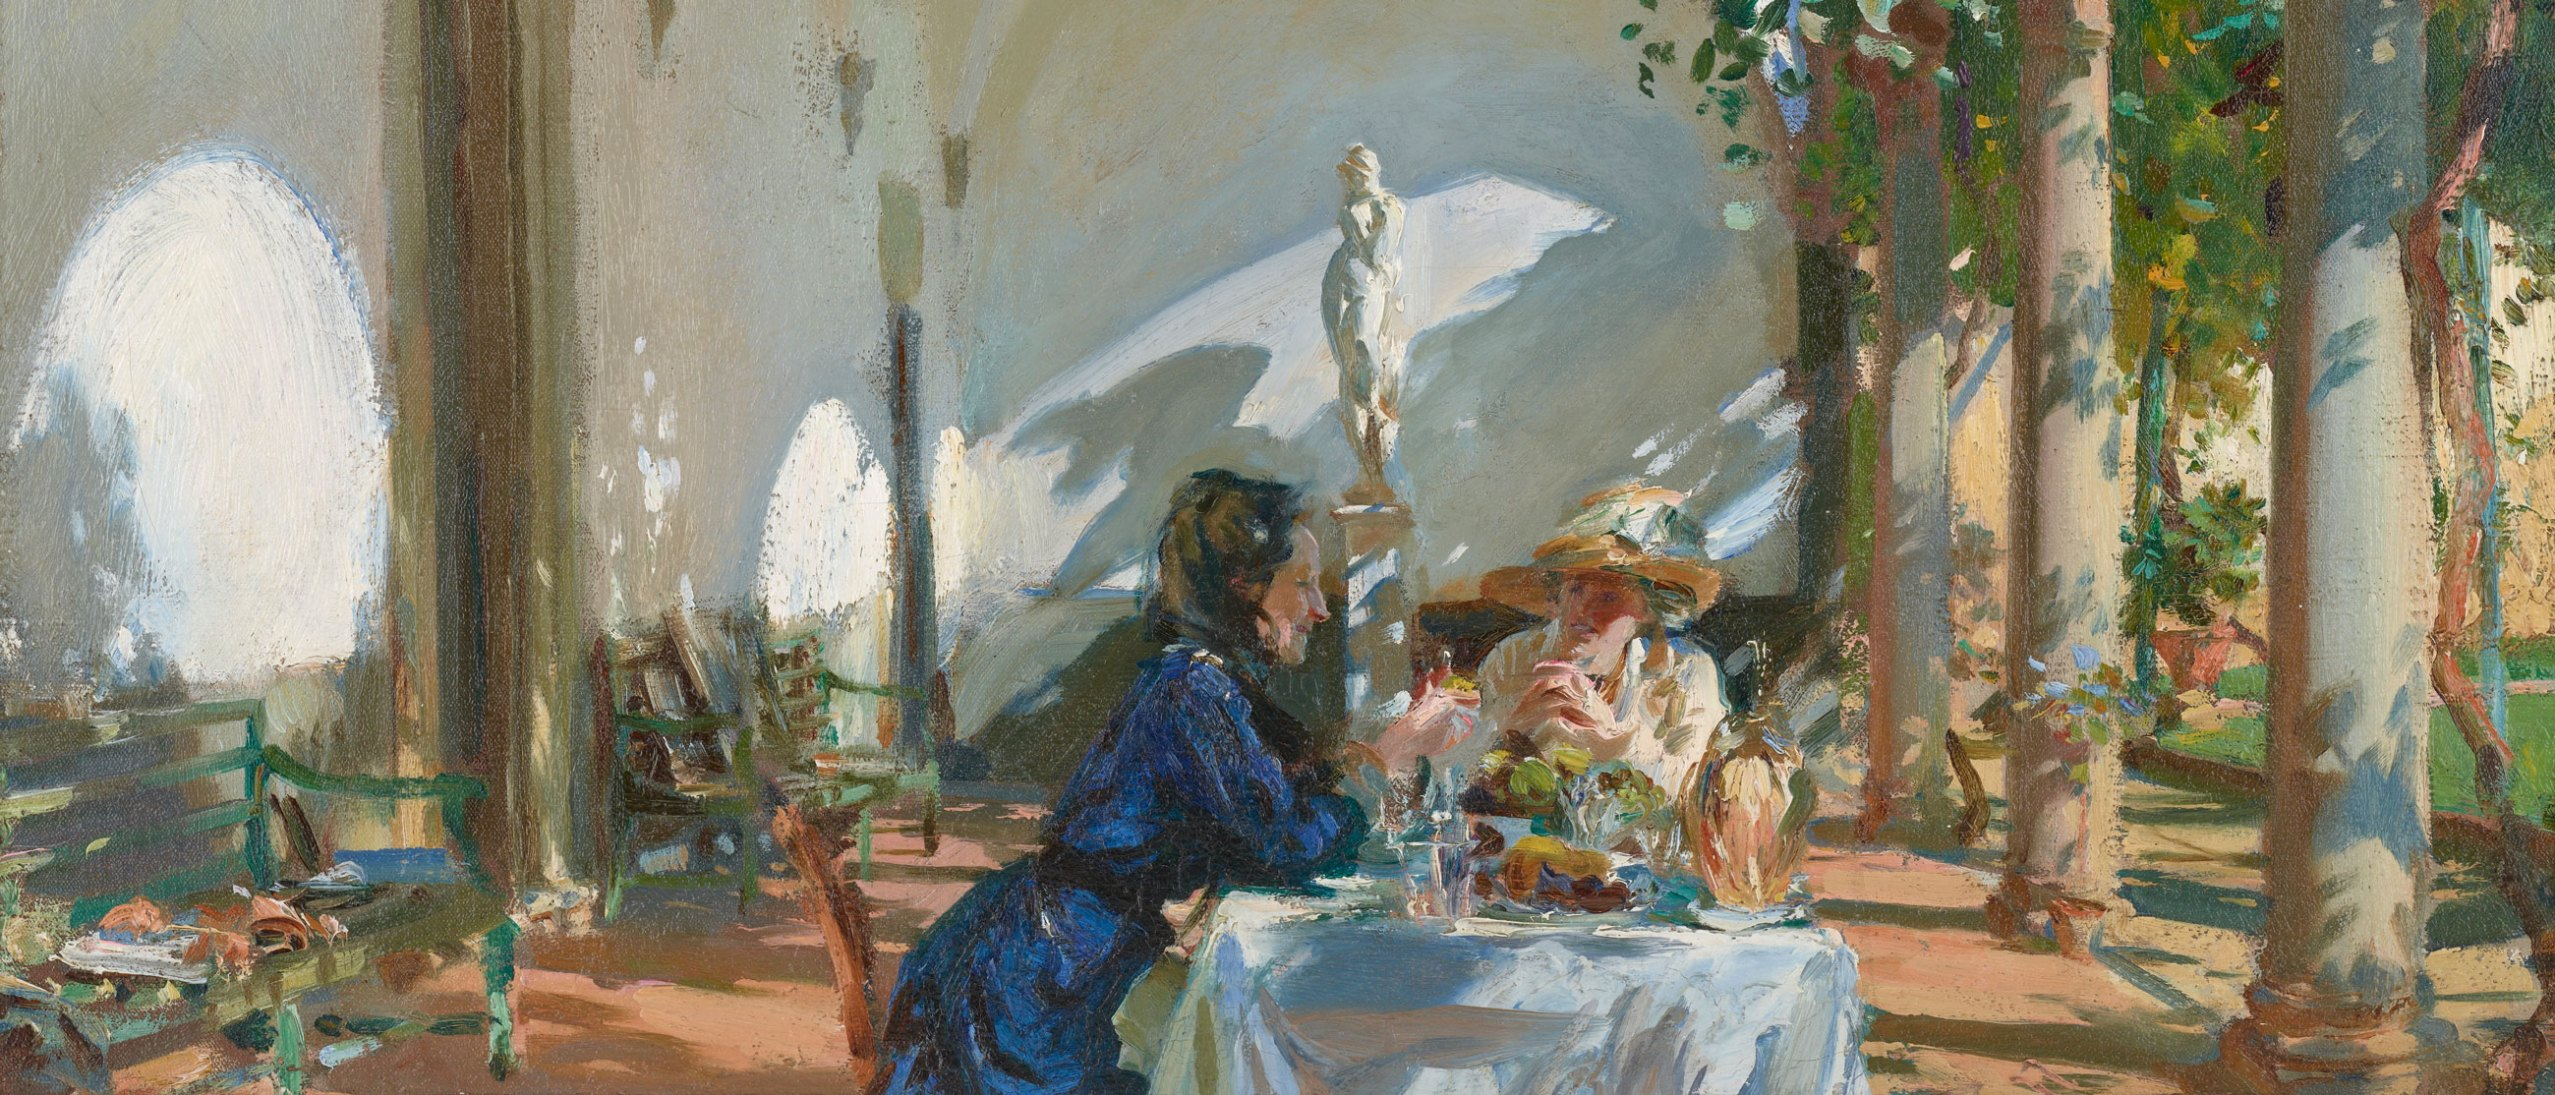 Two women breakfasting in a loggia, dappled with sunlight, described in colorful oil paint with brisk brushwork.